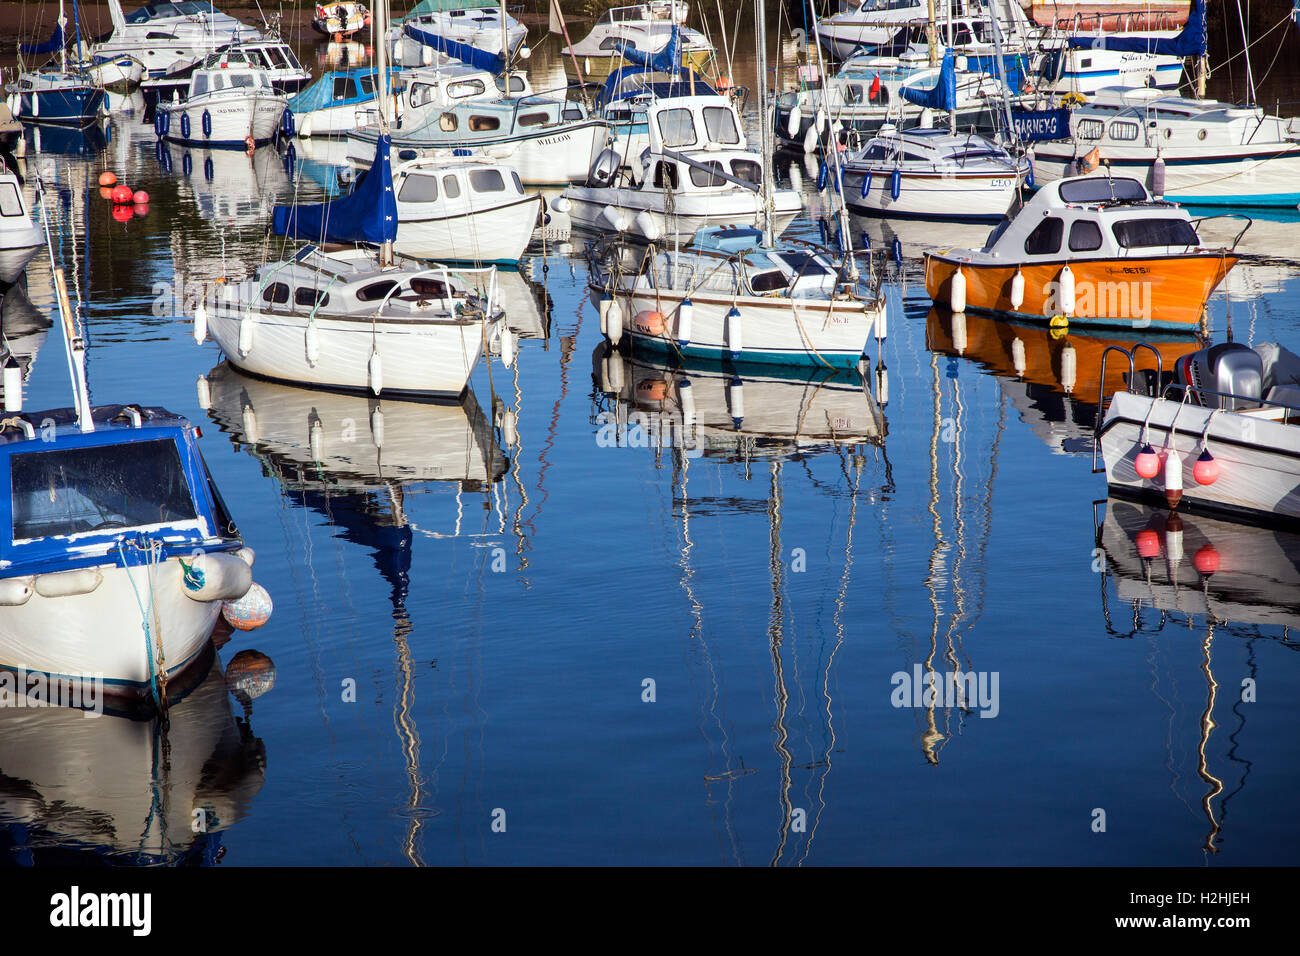 Paignton Harbour nestles on the western shores of TorBay situated midway between Torquay and Brixham harbours. - Stock Image